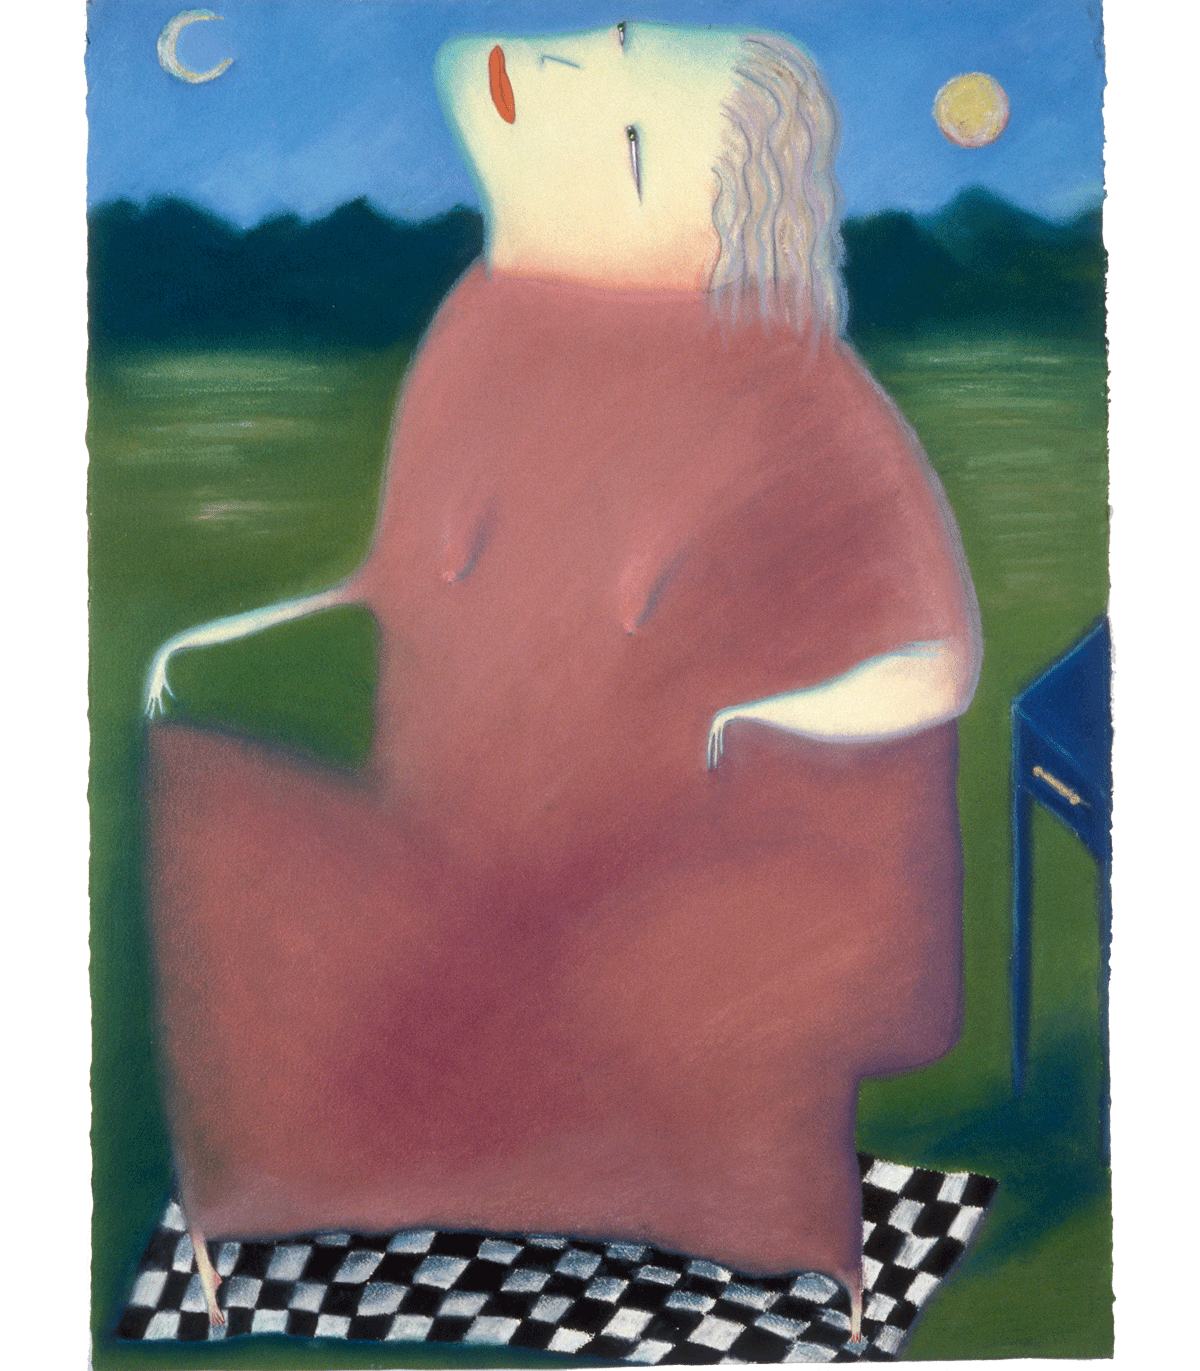 virginiahalstead.com/Paintings/I-want-to-change-my-boundaries.png